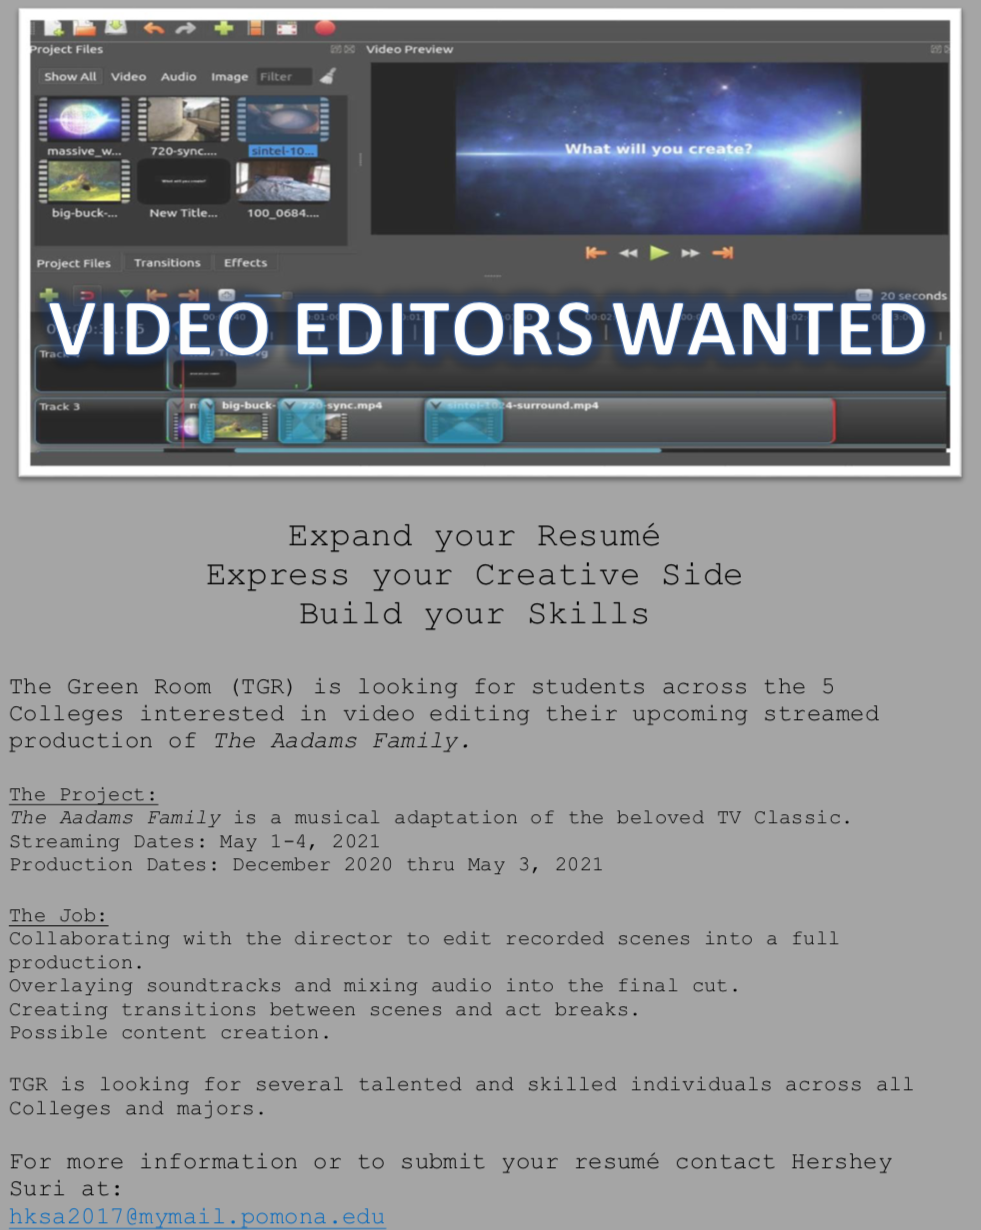 The Green Room Request for Video Editors